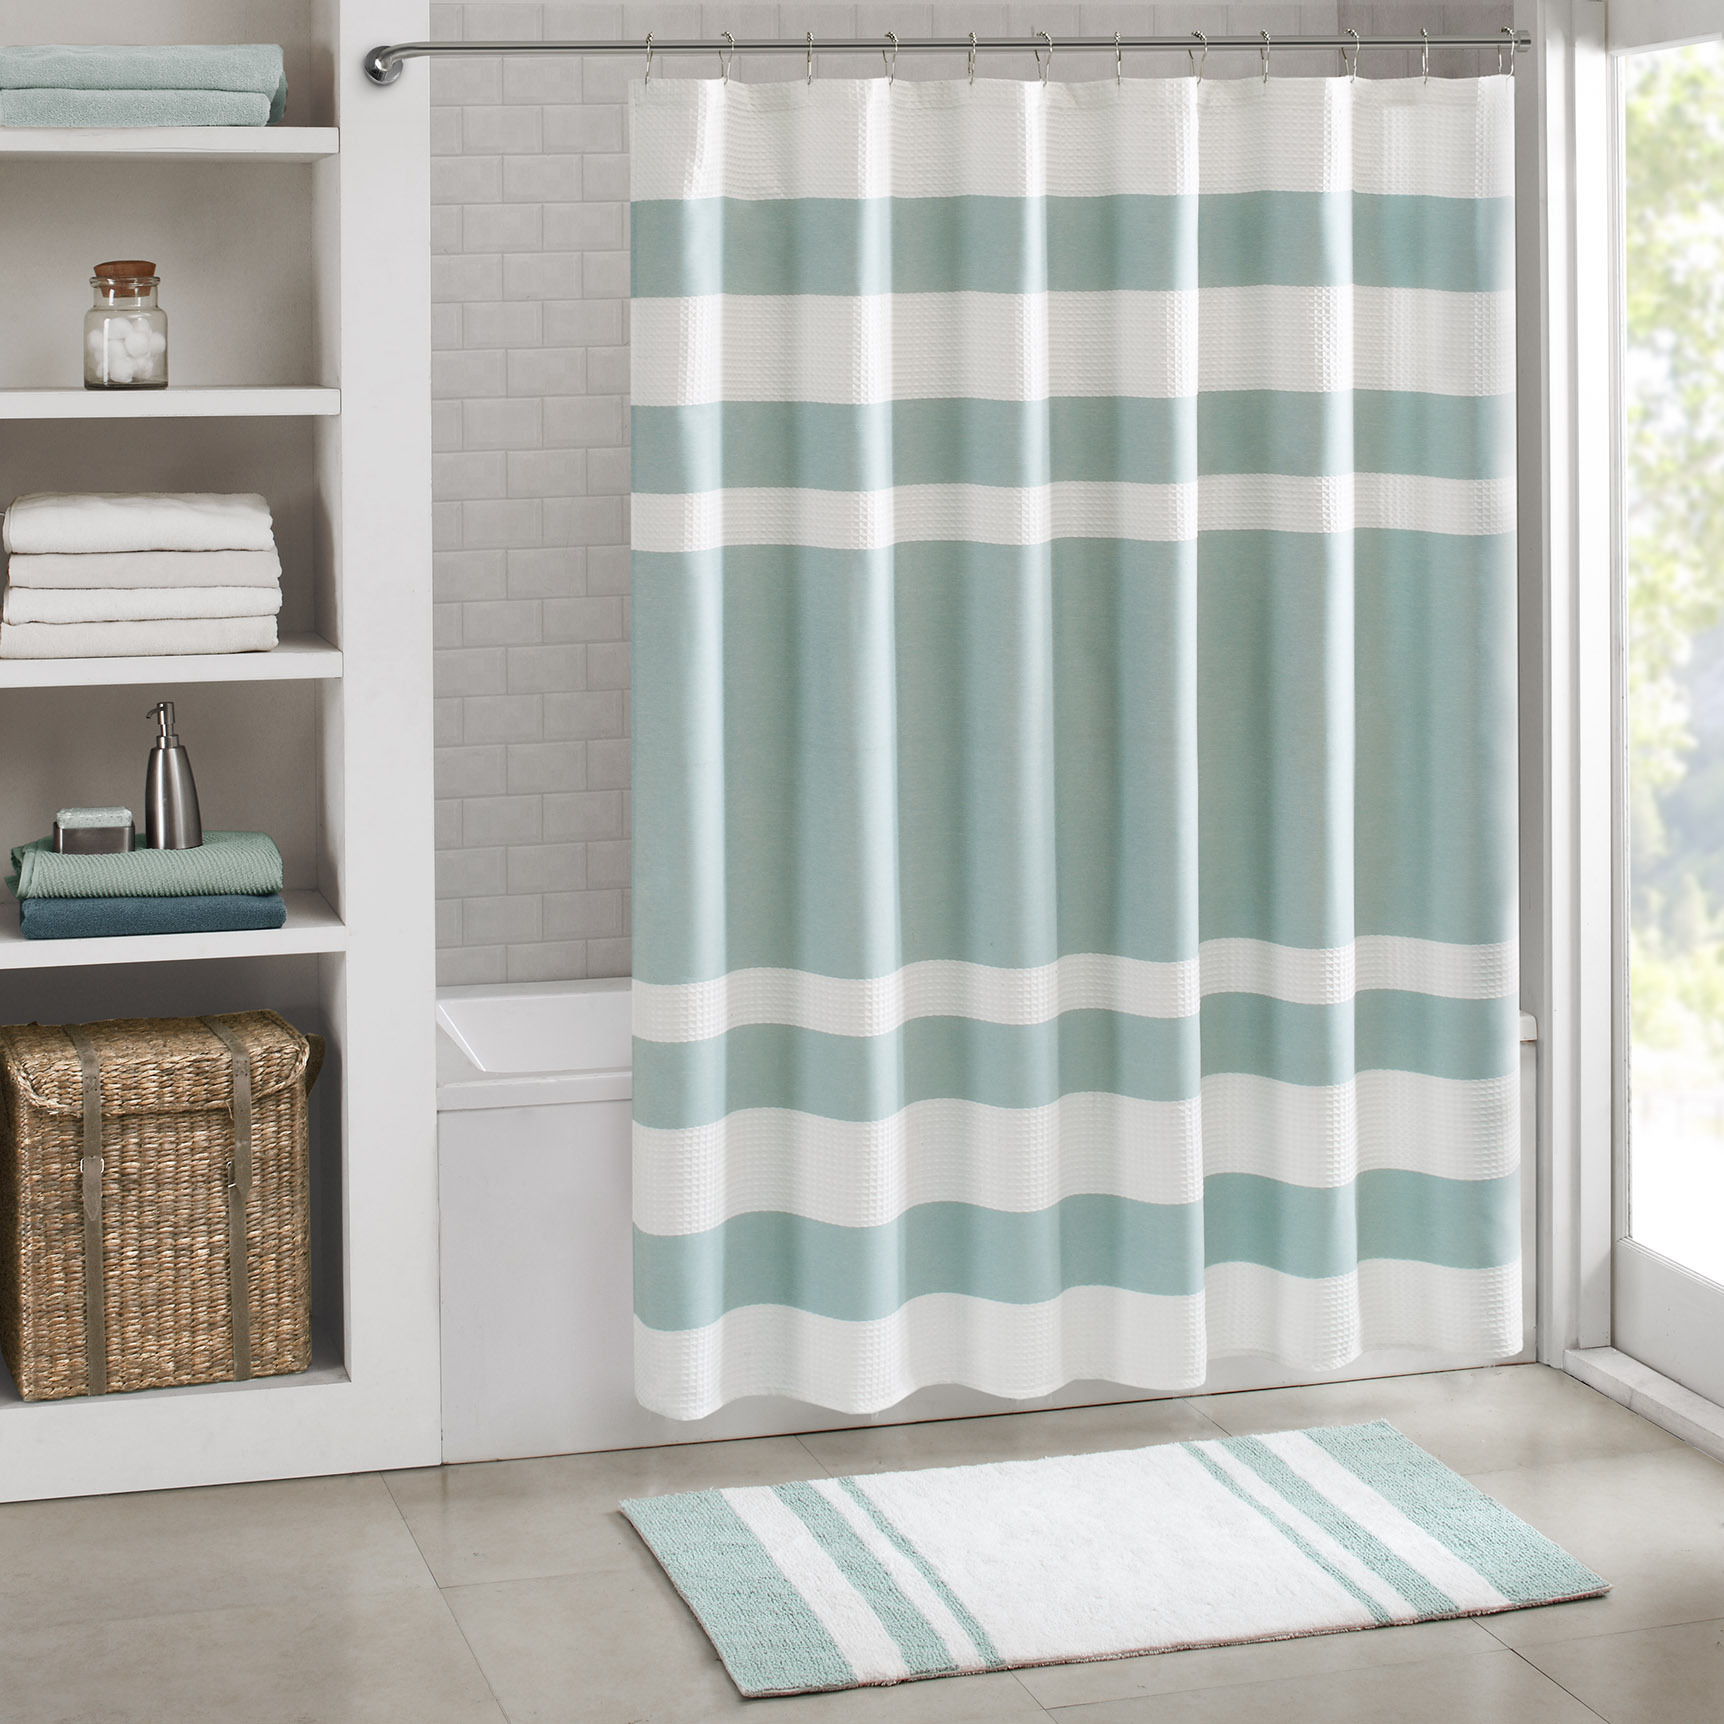 Neat Madison Park Spa Waffle Shower Curtain Aqua Madison Park Spa Waffle Shower Curtain Everything Turquoise Green Shower Curtains Fabric Green Shower Curtain Ebay houzz 01 Green Shower Curtain